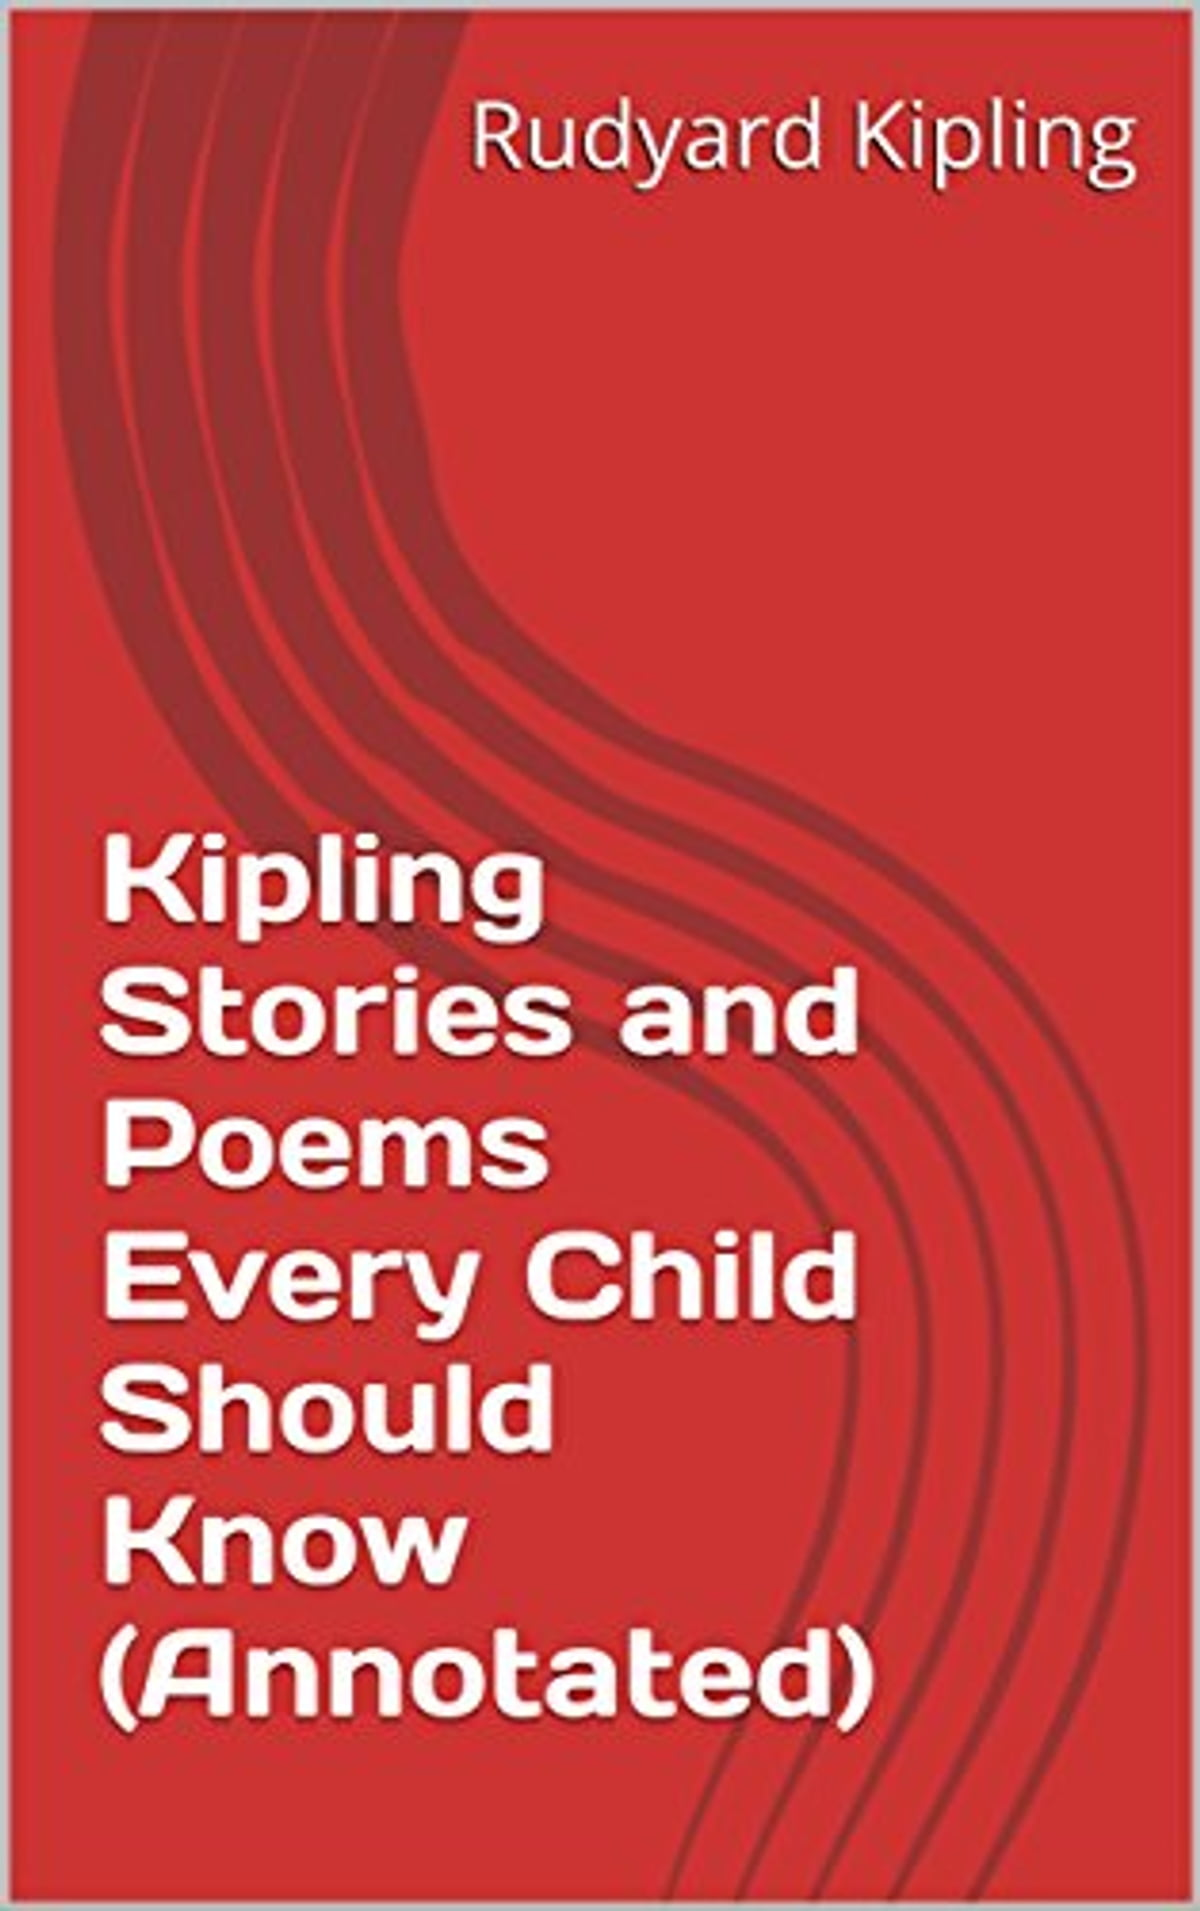 Kipling Stories And Poems Every Child Should Know Annotated Ebook By Rudyard Kipling Rakuten Kobo